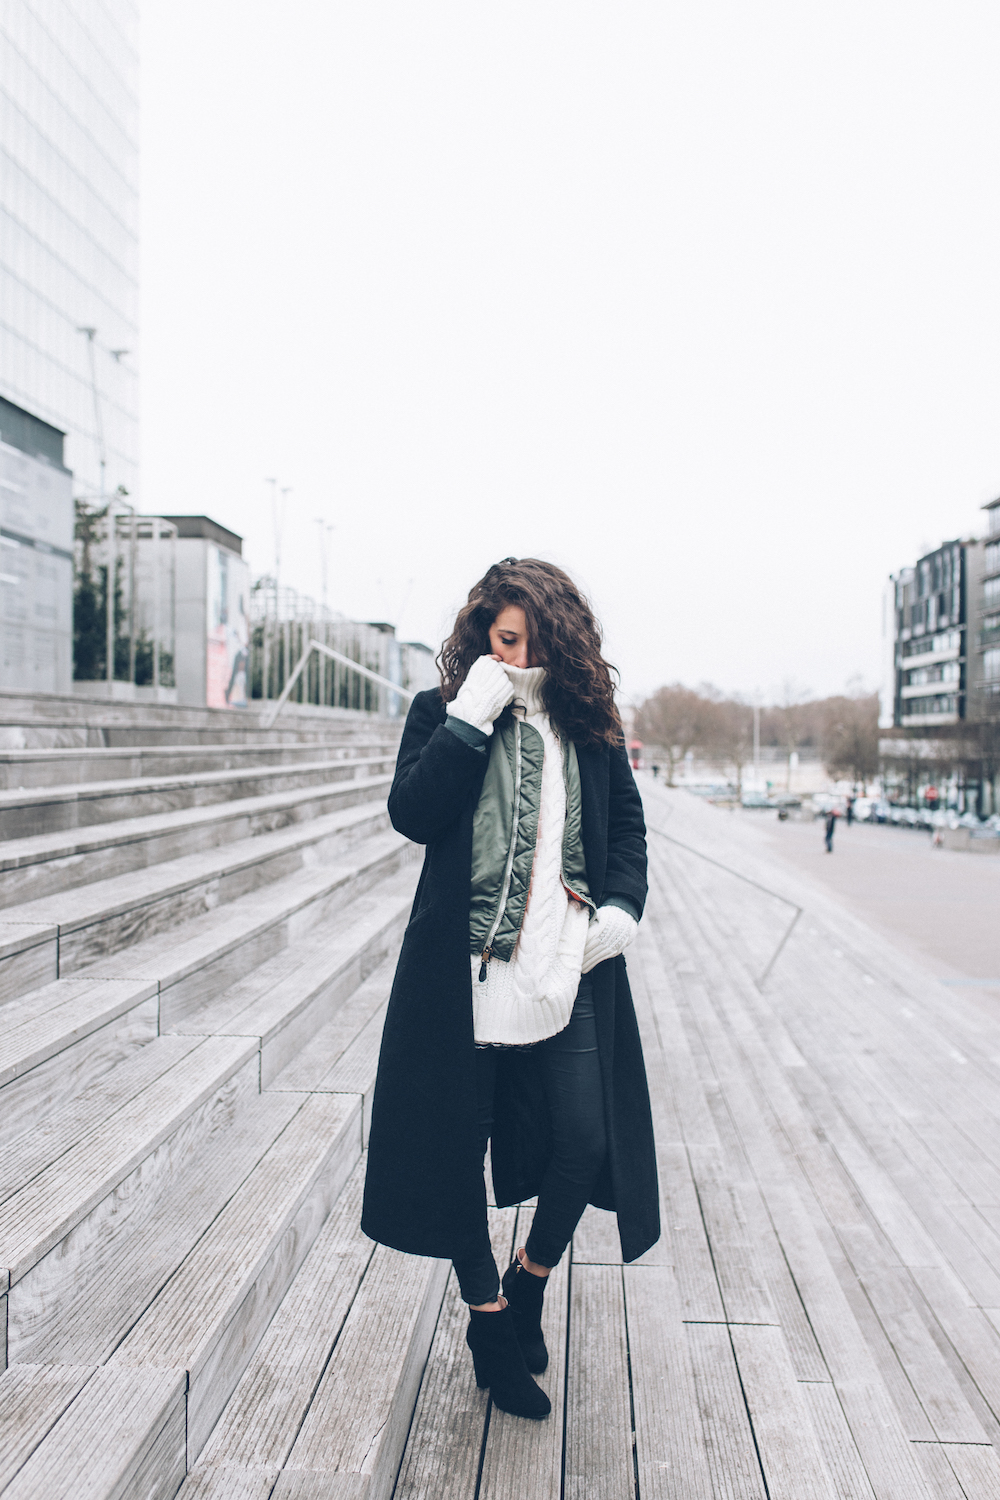 Wear extra long sleeves as part of a knitwear look like Alexandra Guerain to get a warm and cosy winter feel. Throw on a black maxi coat and ankle boots to steal this style! Coat: Asos, Bombers: Vintage, Sweater: Anine Bing, Jeans: Zara, Shoes: Minelle x Gerogia May Jagger.